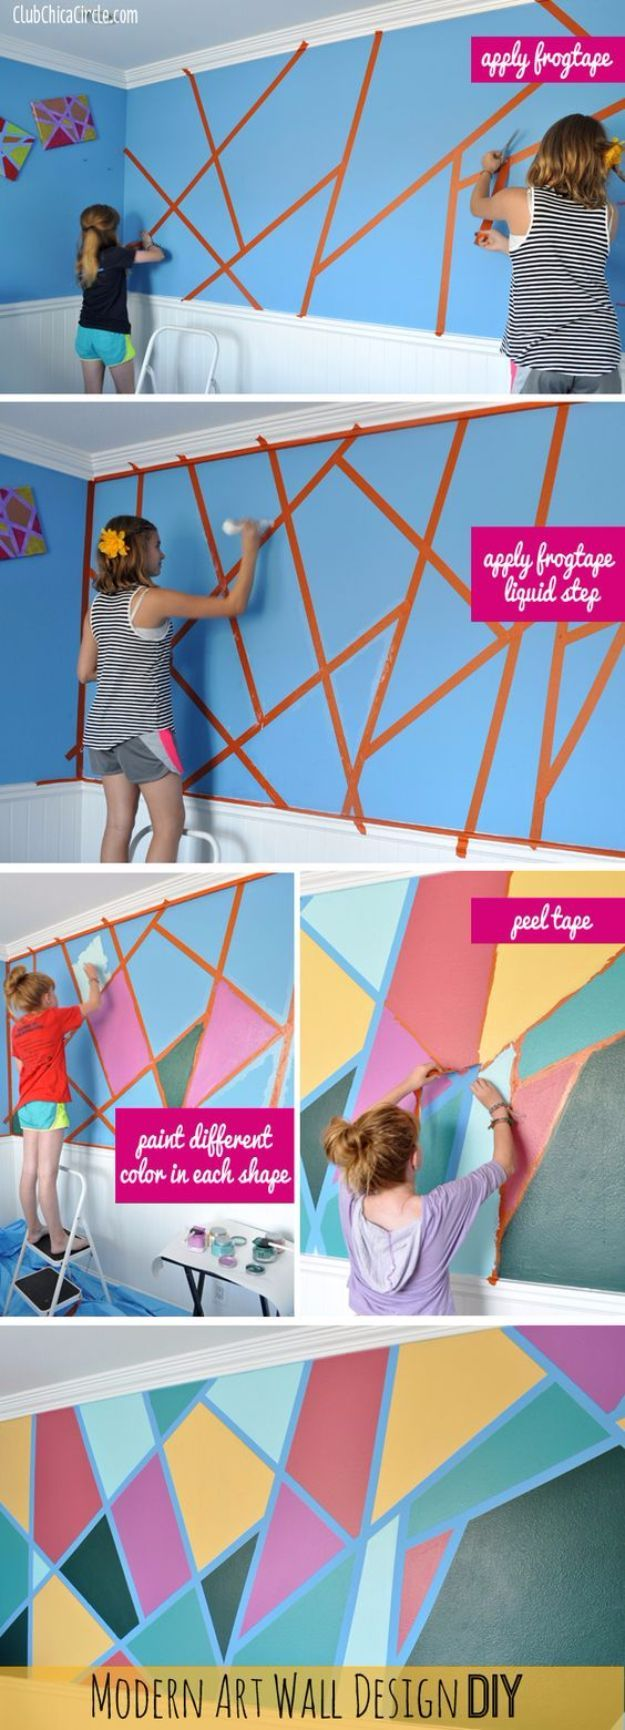 34 cool ways to paint walls - Wall Design For Kids